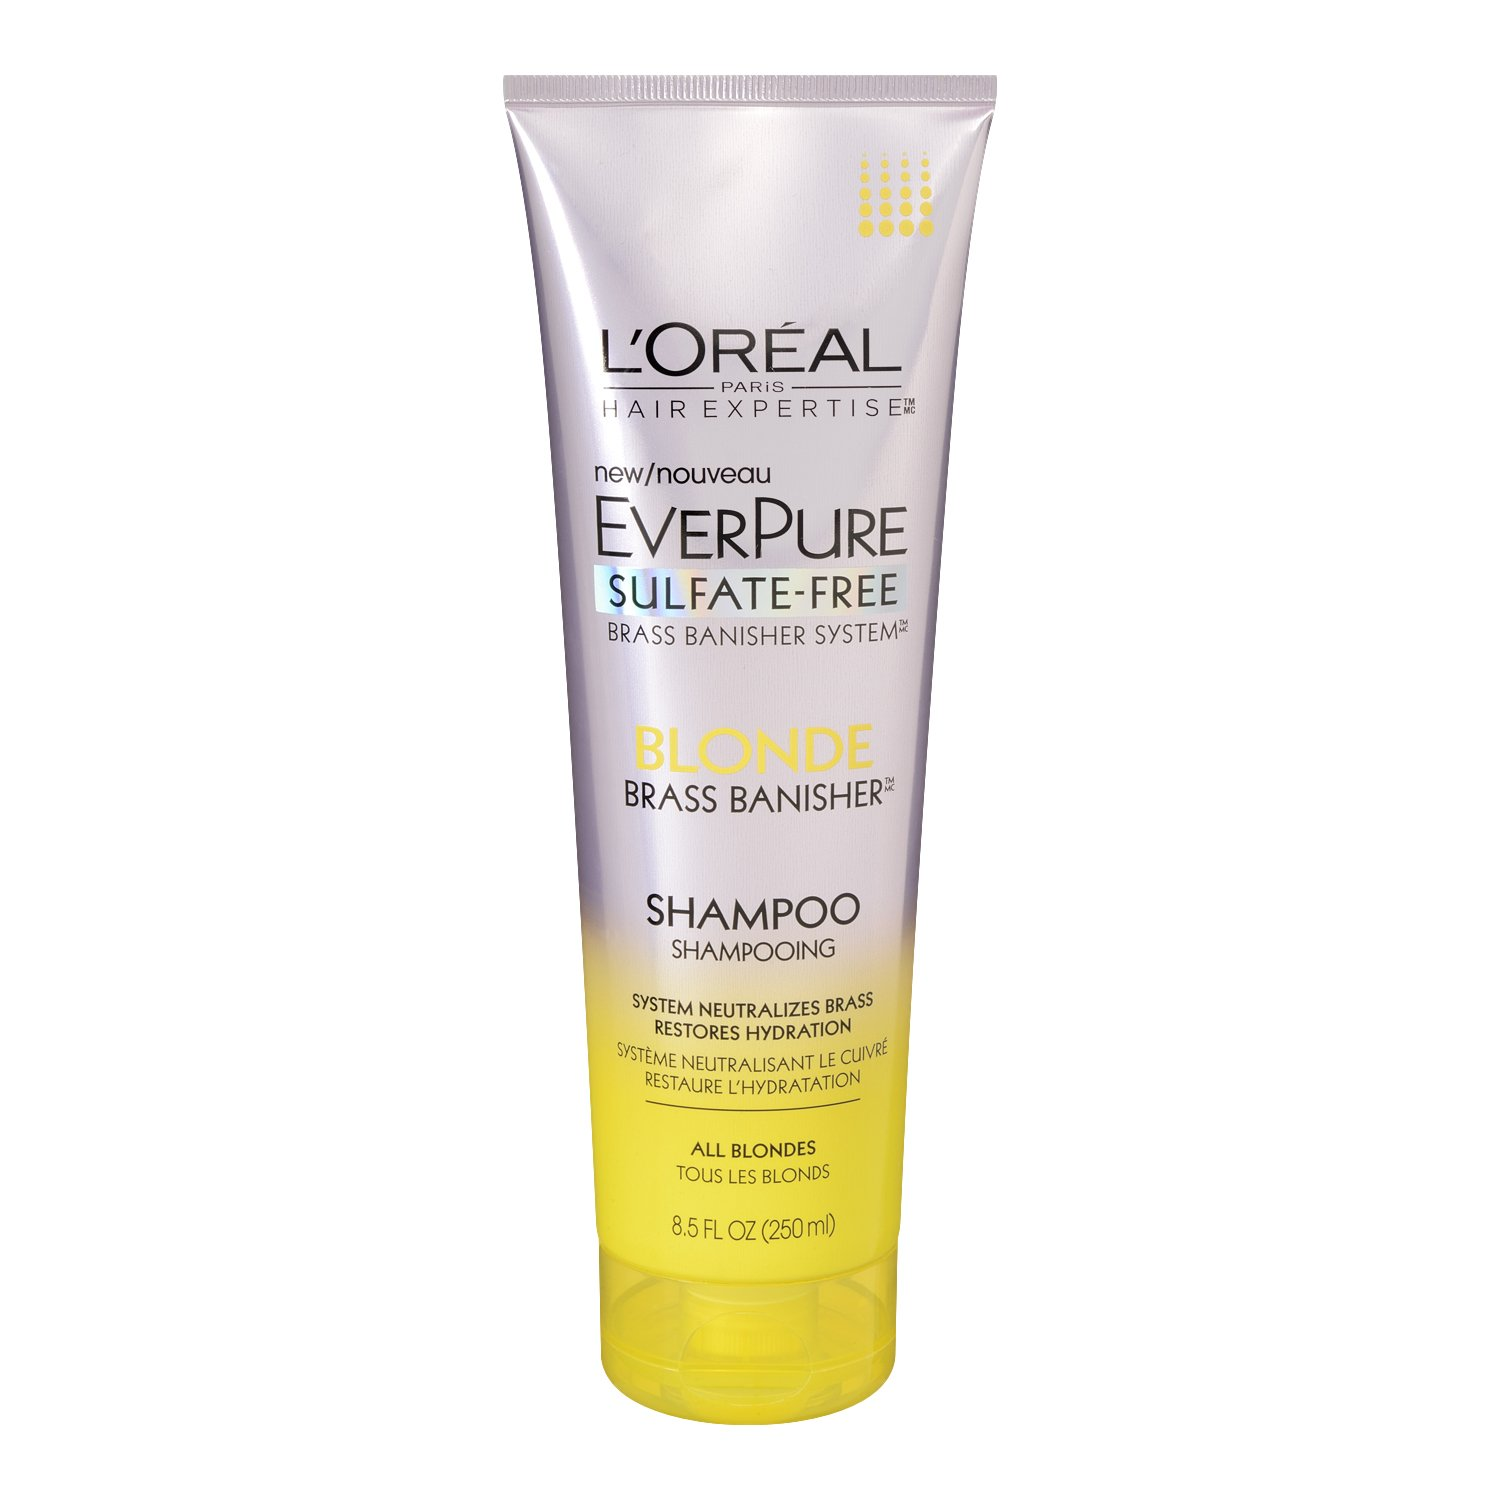 We have the lowest prices on hair care products and beauty supplies.